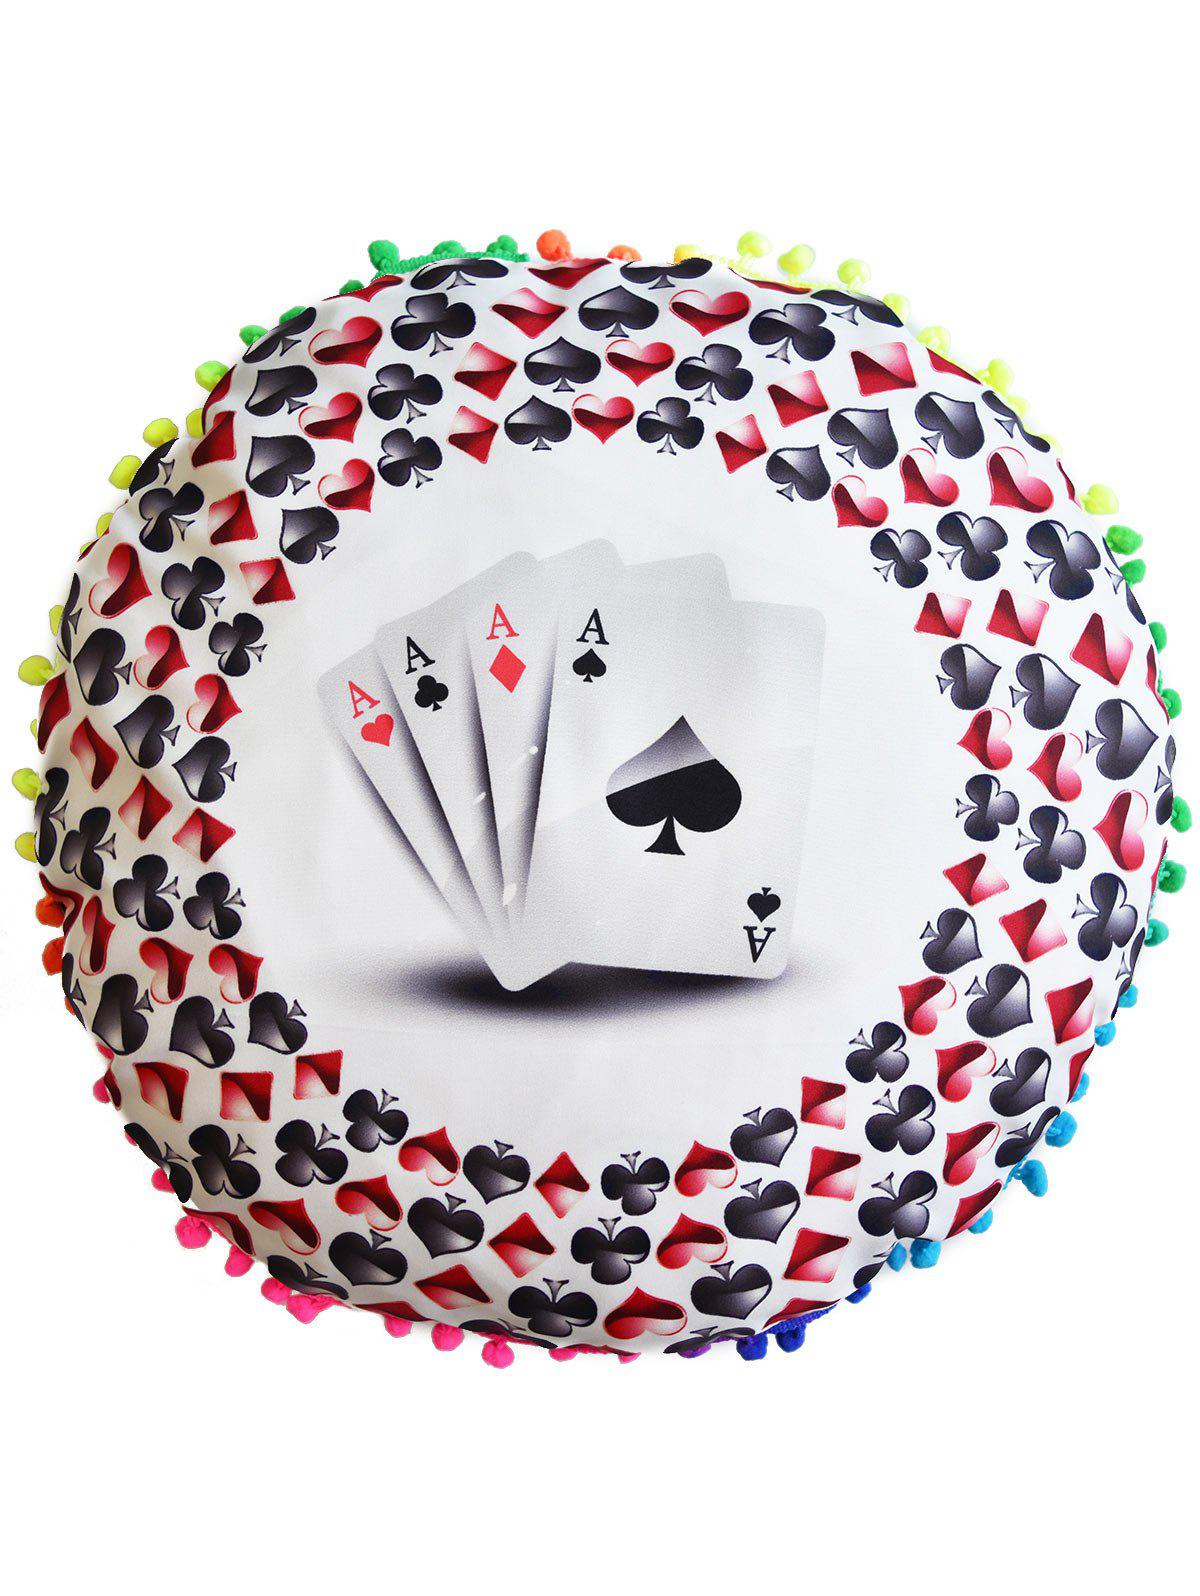 Poker Print Round Decorative Pillow Case Cover - COLORMIX DIAMETER: 45CM